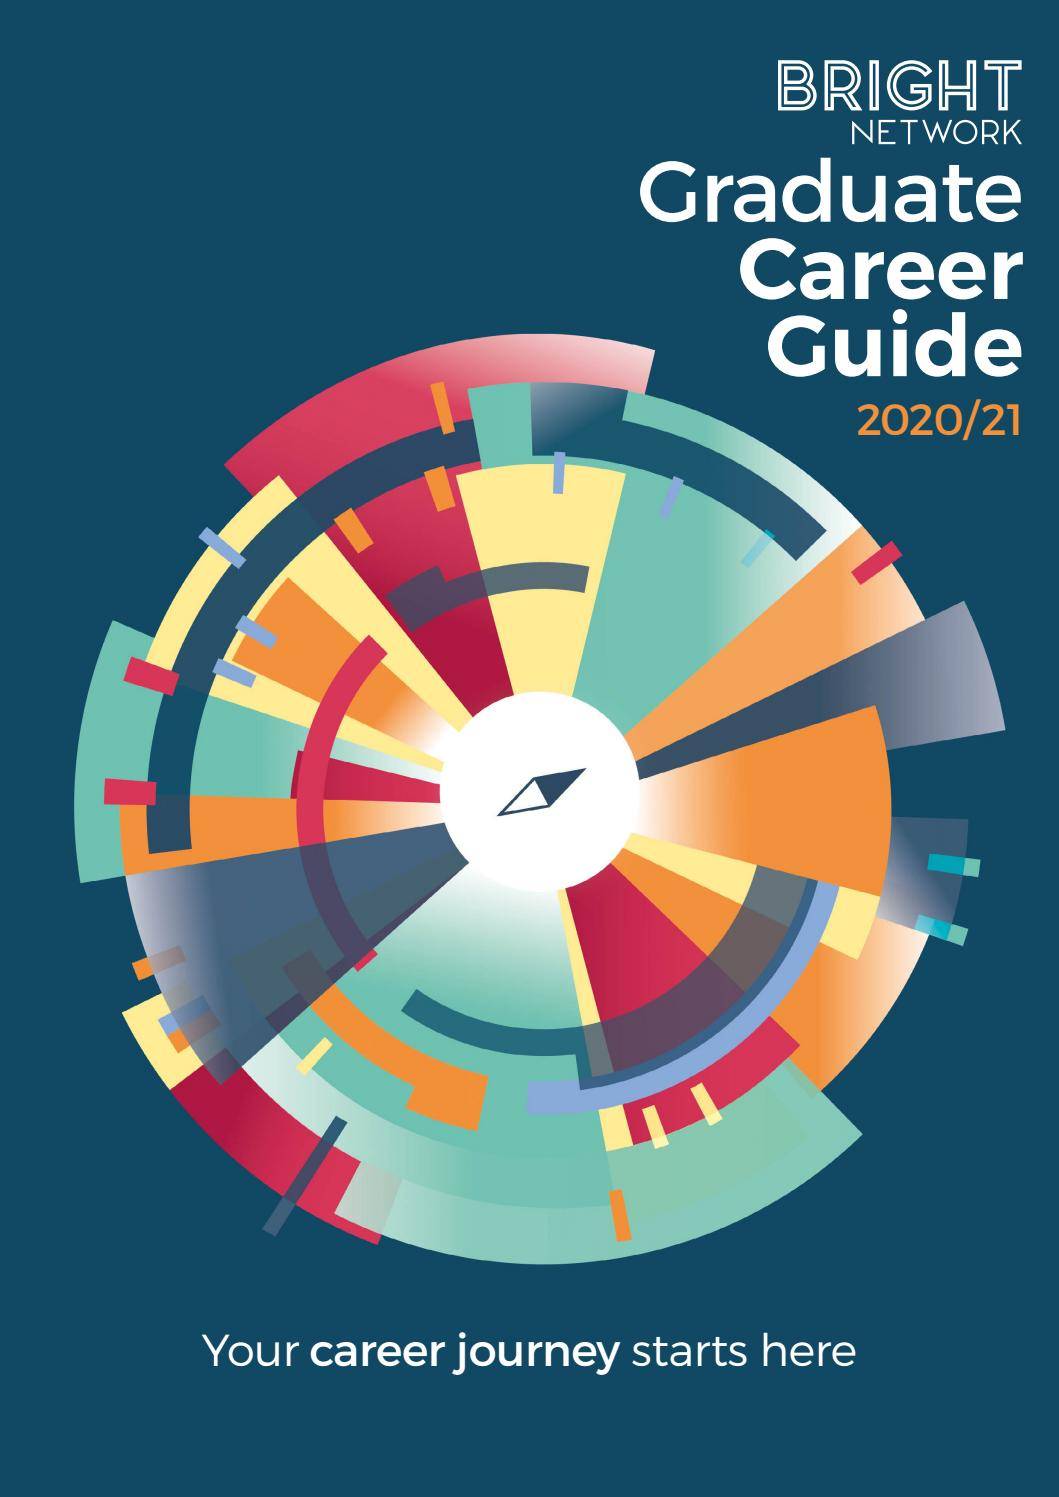 Bright Network S Graduate Career Guide 2020 21 By Brightnetwork Issuu